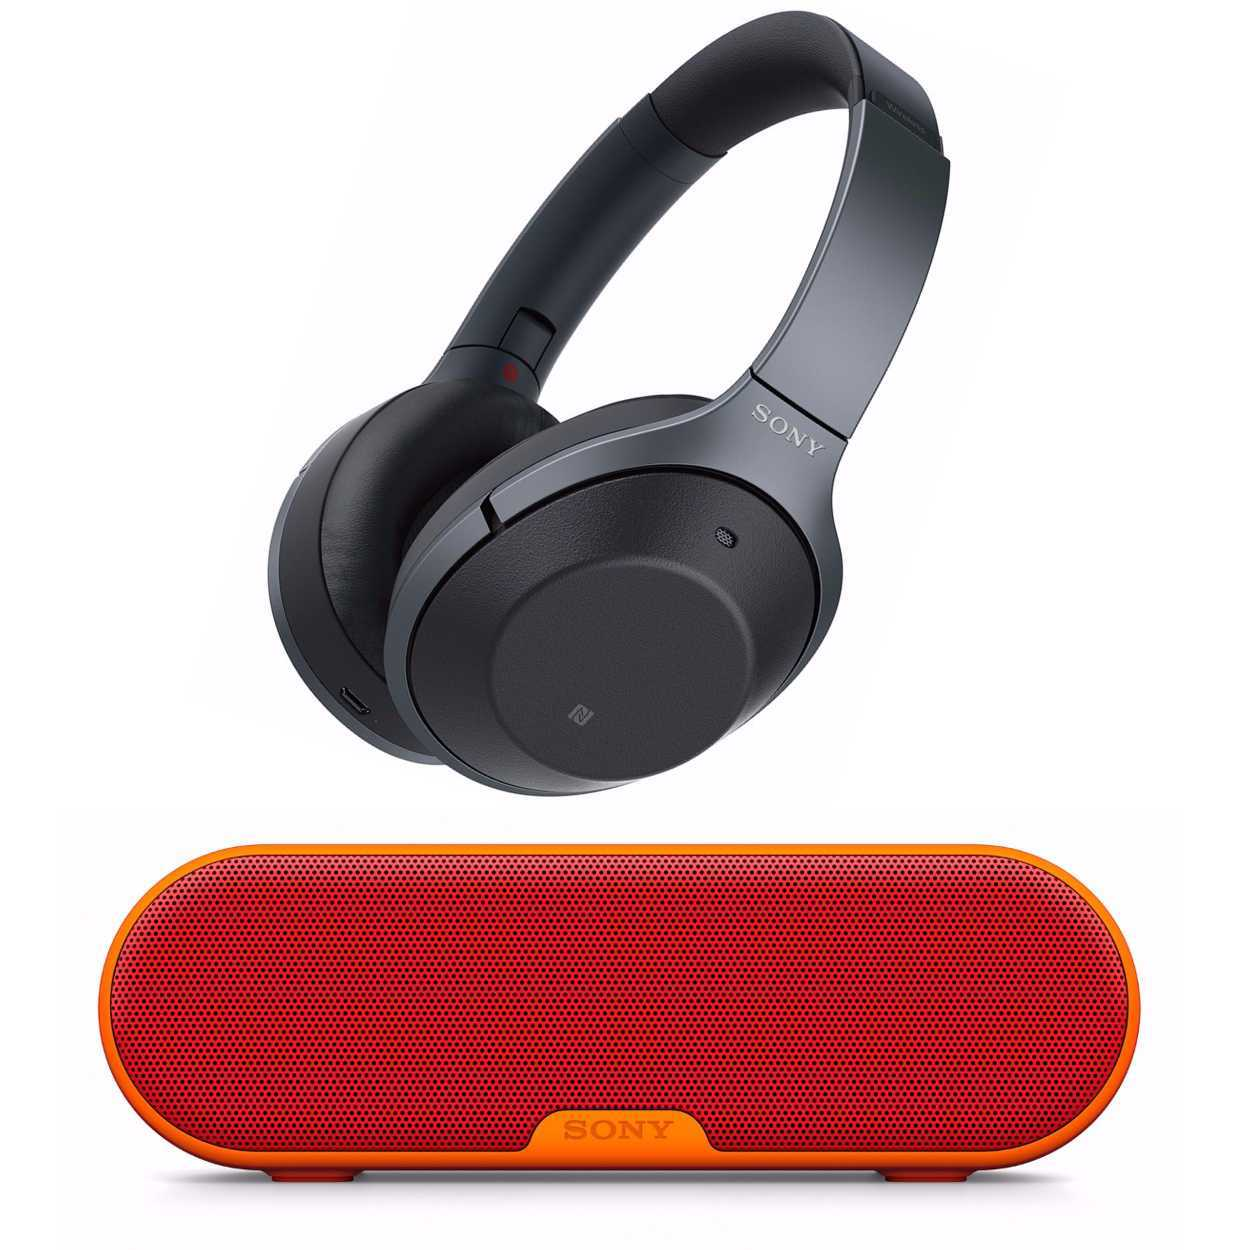 Sony Wireless Noise Cancelling Headphones (Black) with Portable Speaker (Red)